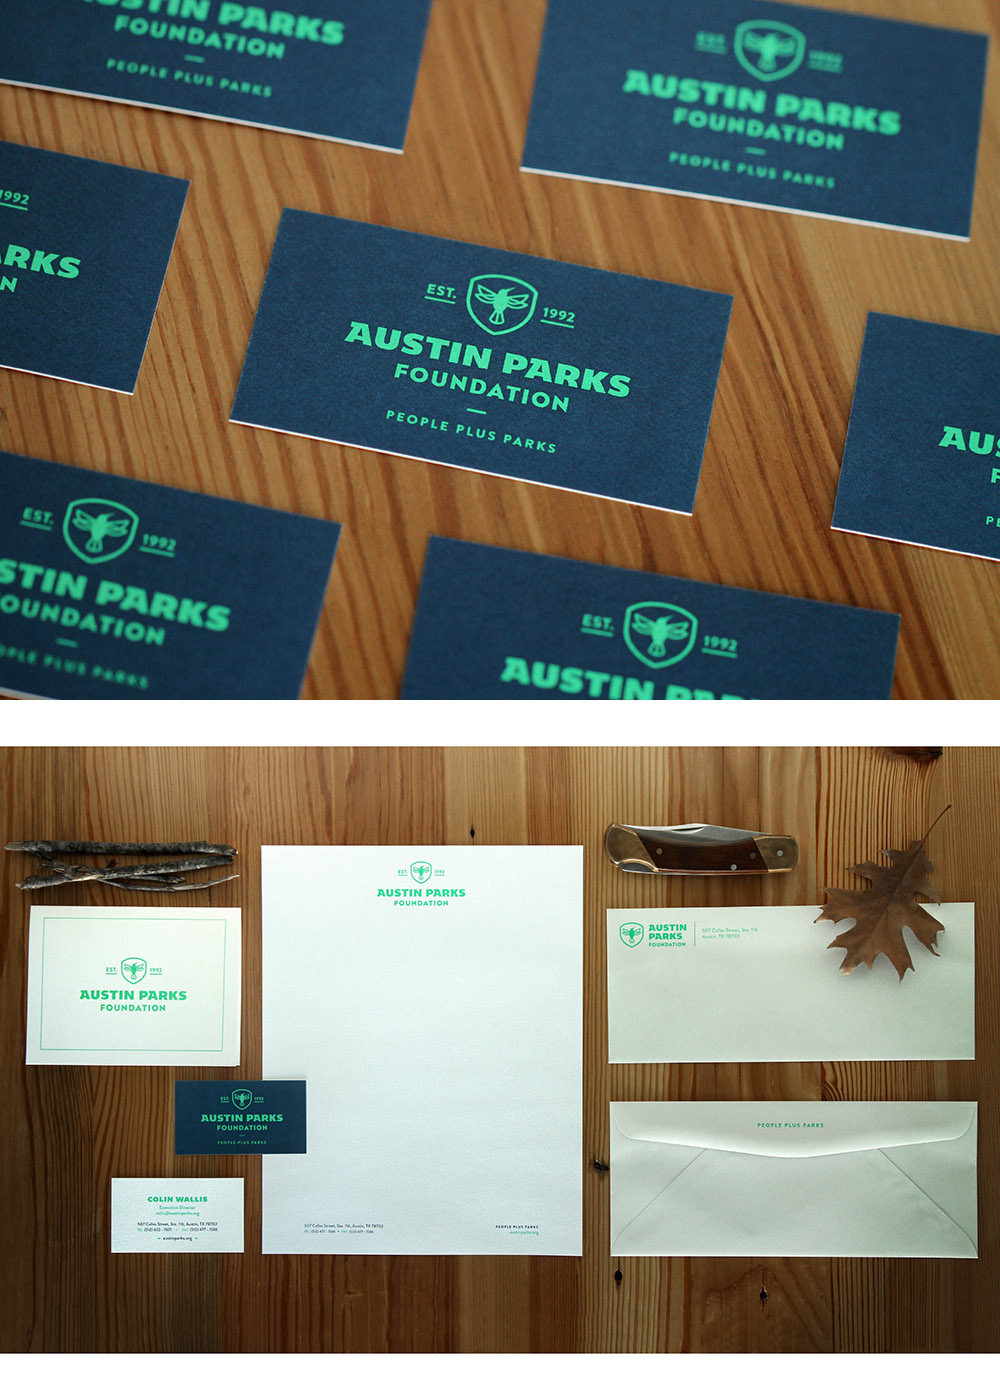 Austin Parks Foundation by The Butler Bros